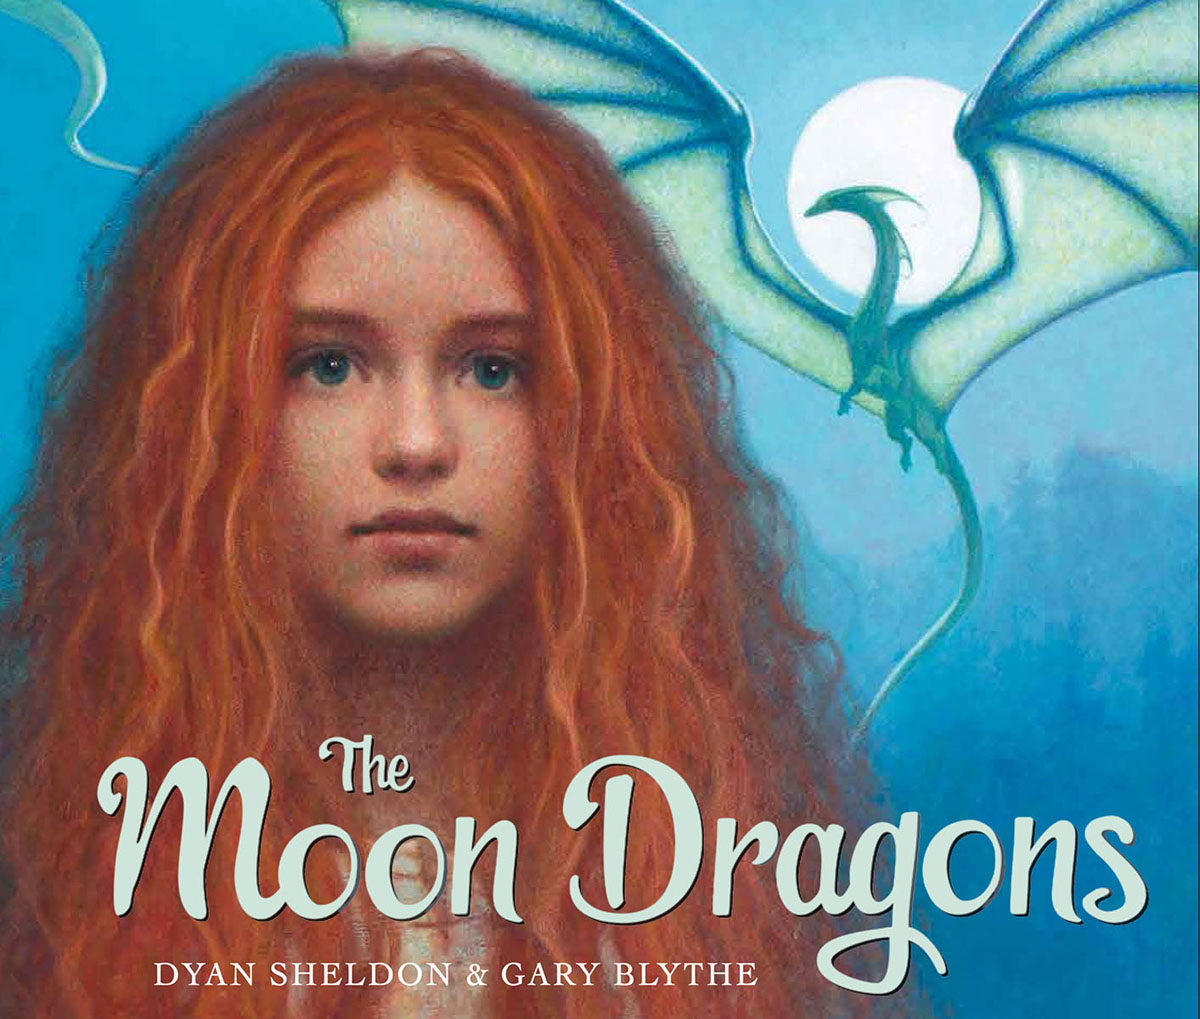 The Moon Dragons guide to the dragons volume 1